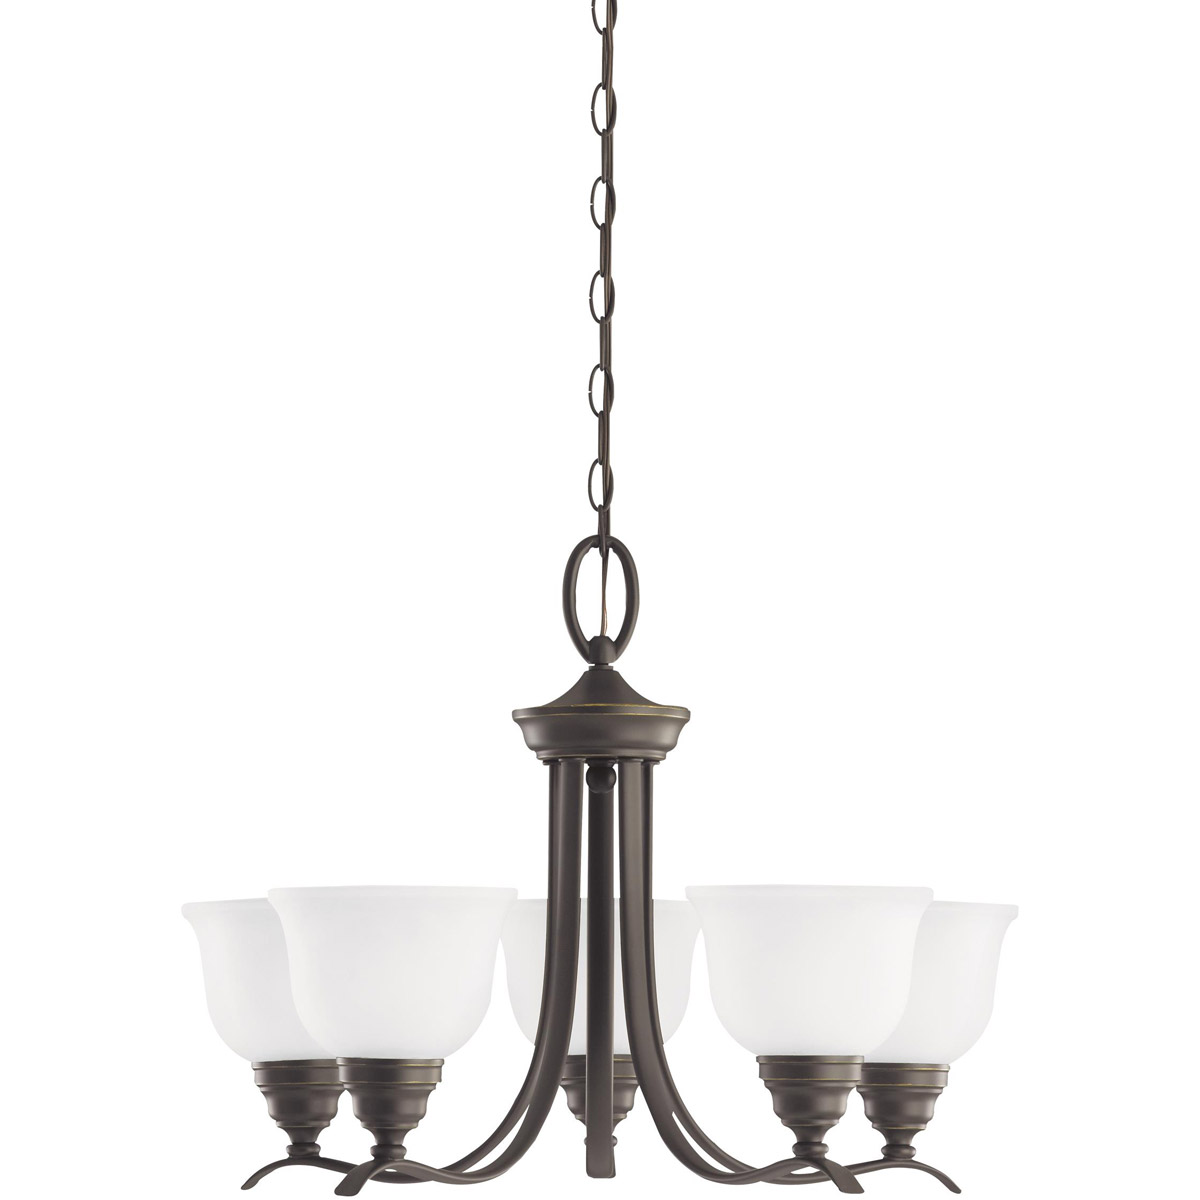 Sea Gull Lighting Wheaton 5 Light Chandelier in Heirloom Bronze 31626-782 photo